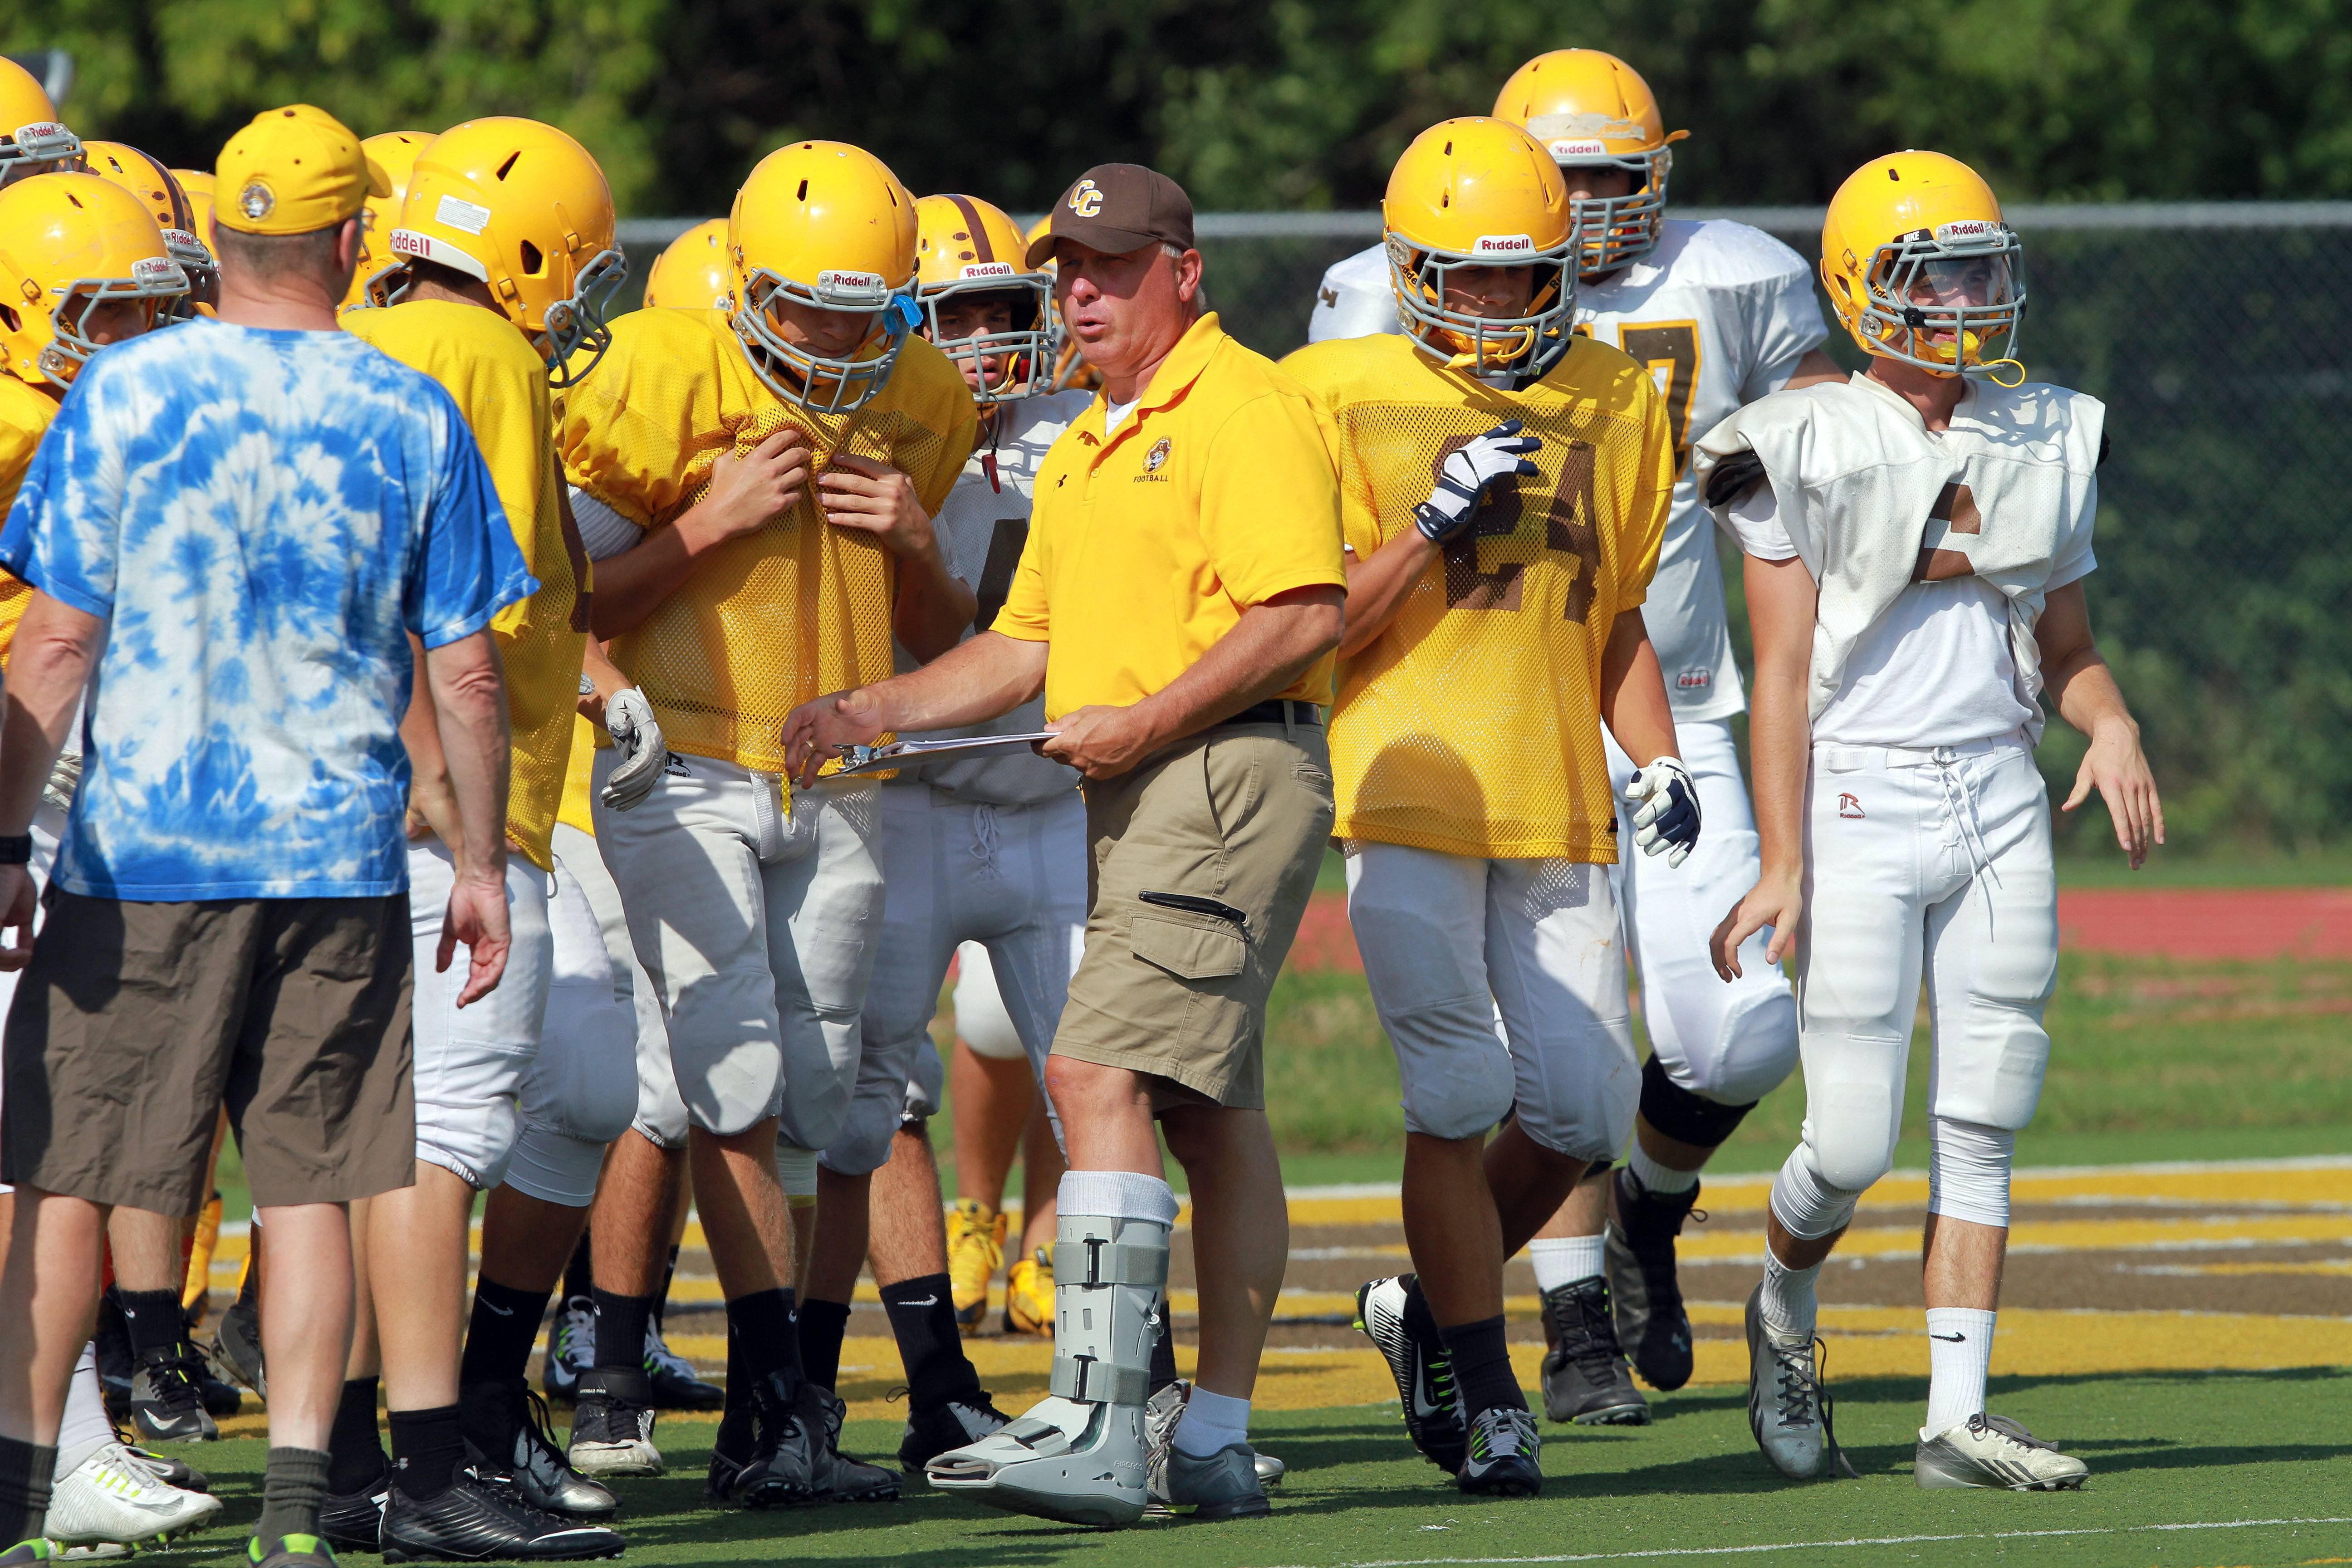 Head coach Andy Bitto talks with players during football practice Tuesday at Carmel High School in Mundelein.